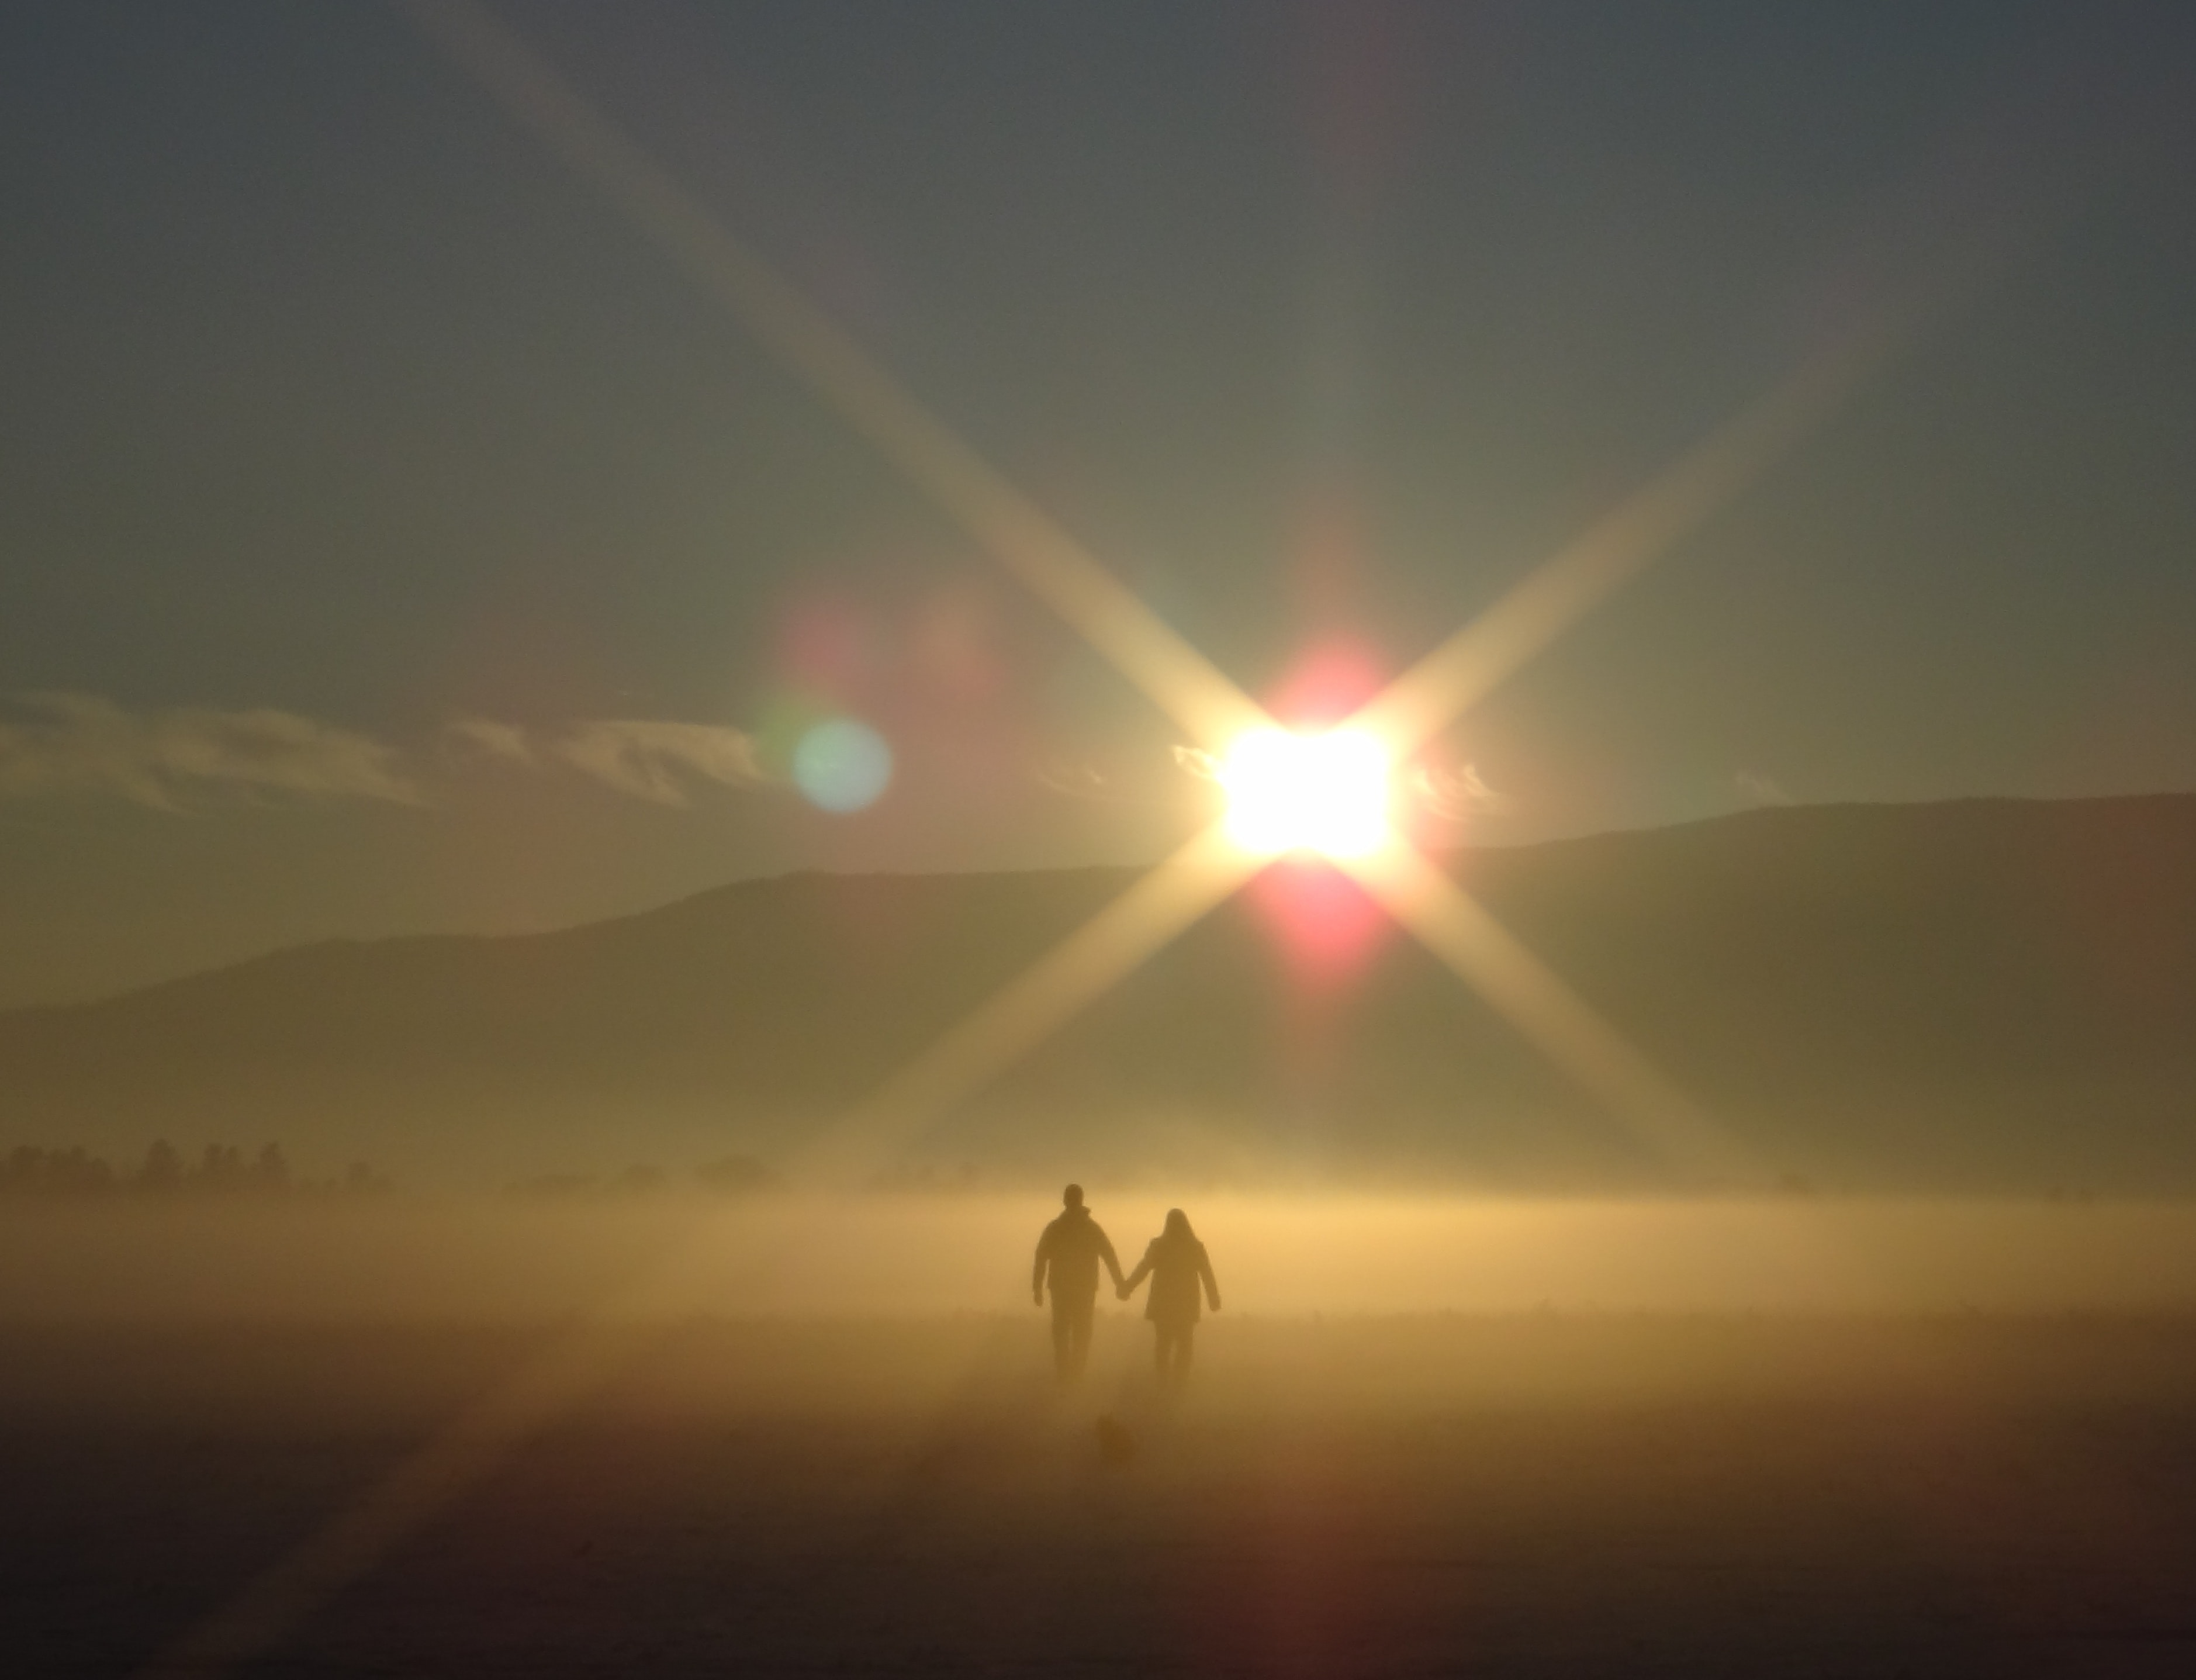 Two people walking through a foggy area during sunset